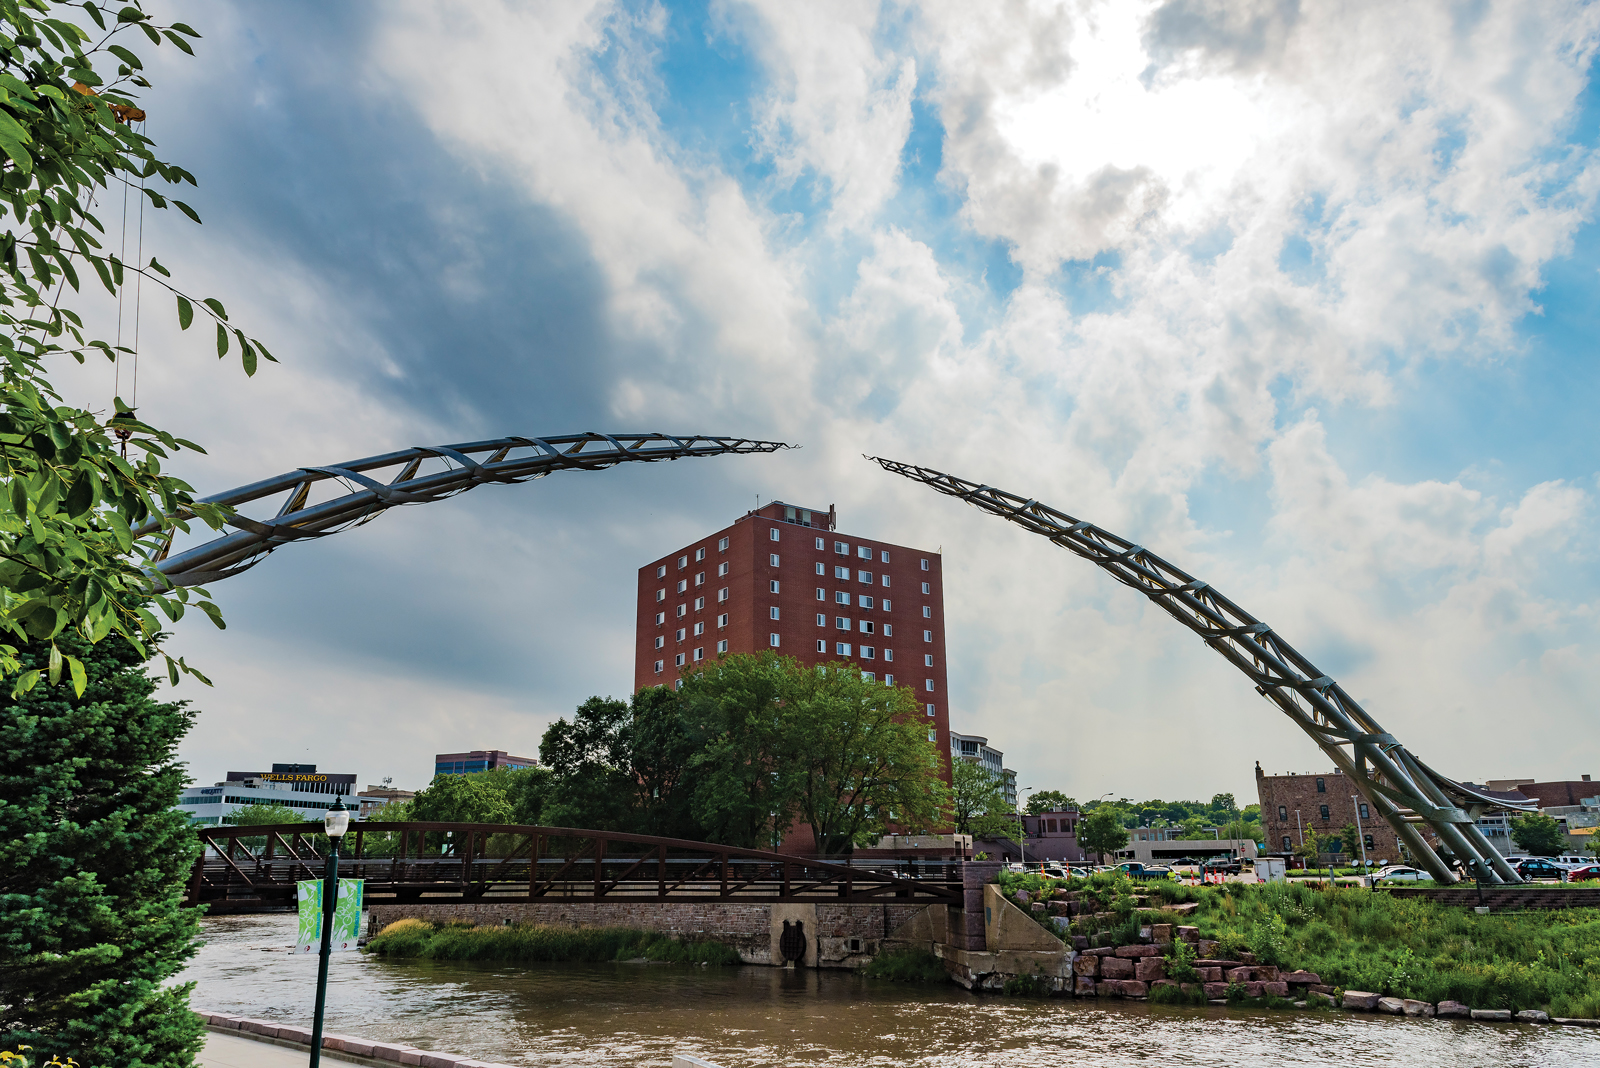 The Arc of Dreams towering over Falls Park in Sioux Falls